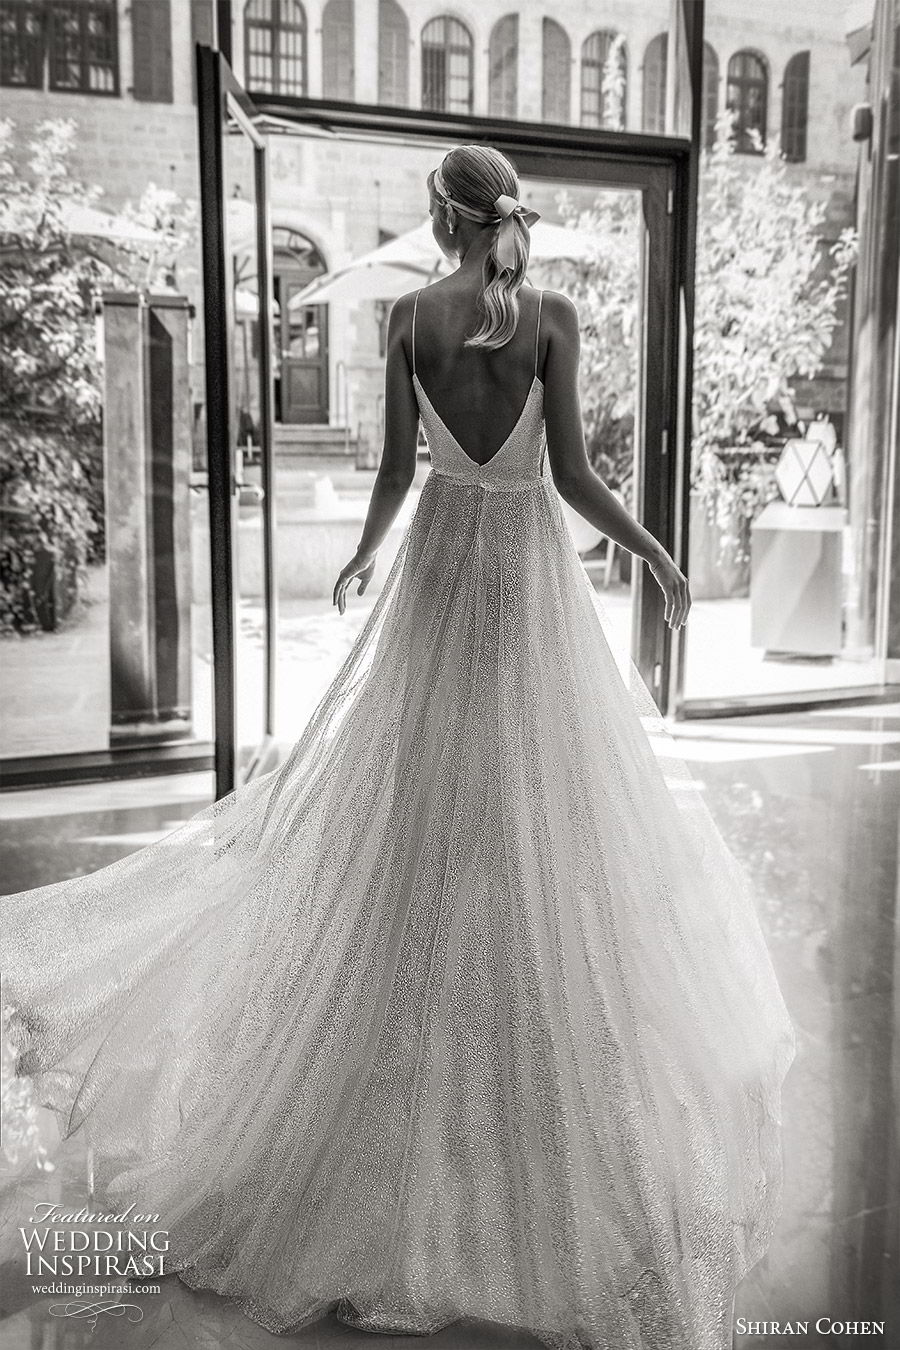 shiran cohen 2019 bridal sleeveless thin straps sweetheart plunging neckline fully embellished a line wedding dress low back romantic glitzy (7) bv